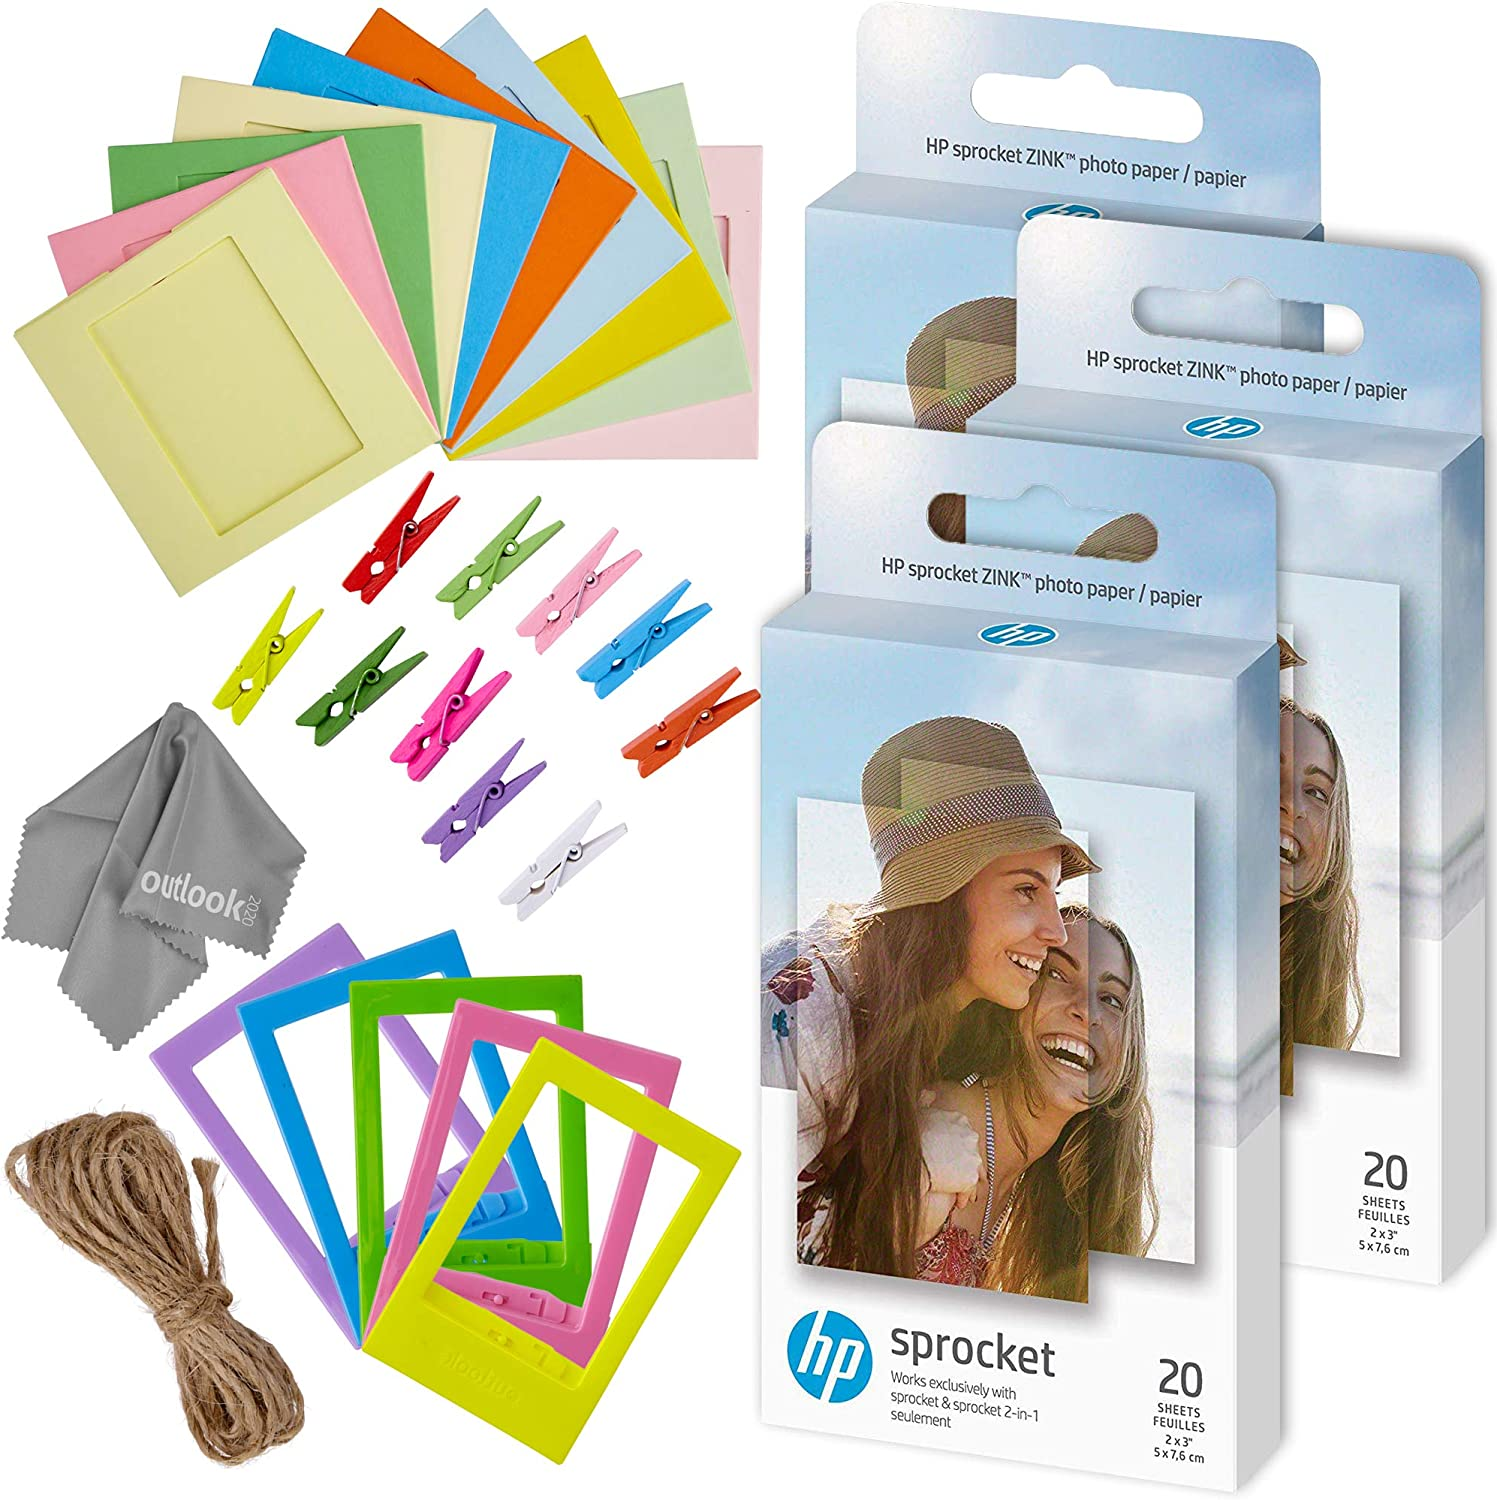 Zink 60 PK Photo Paper and Frames Bundle - Sticker Paper for HP Sprocket Printers - Sticky 2x3 Sheets for Printing Pocket Size Phone Pictures - with Frames, Hanging Clips, String